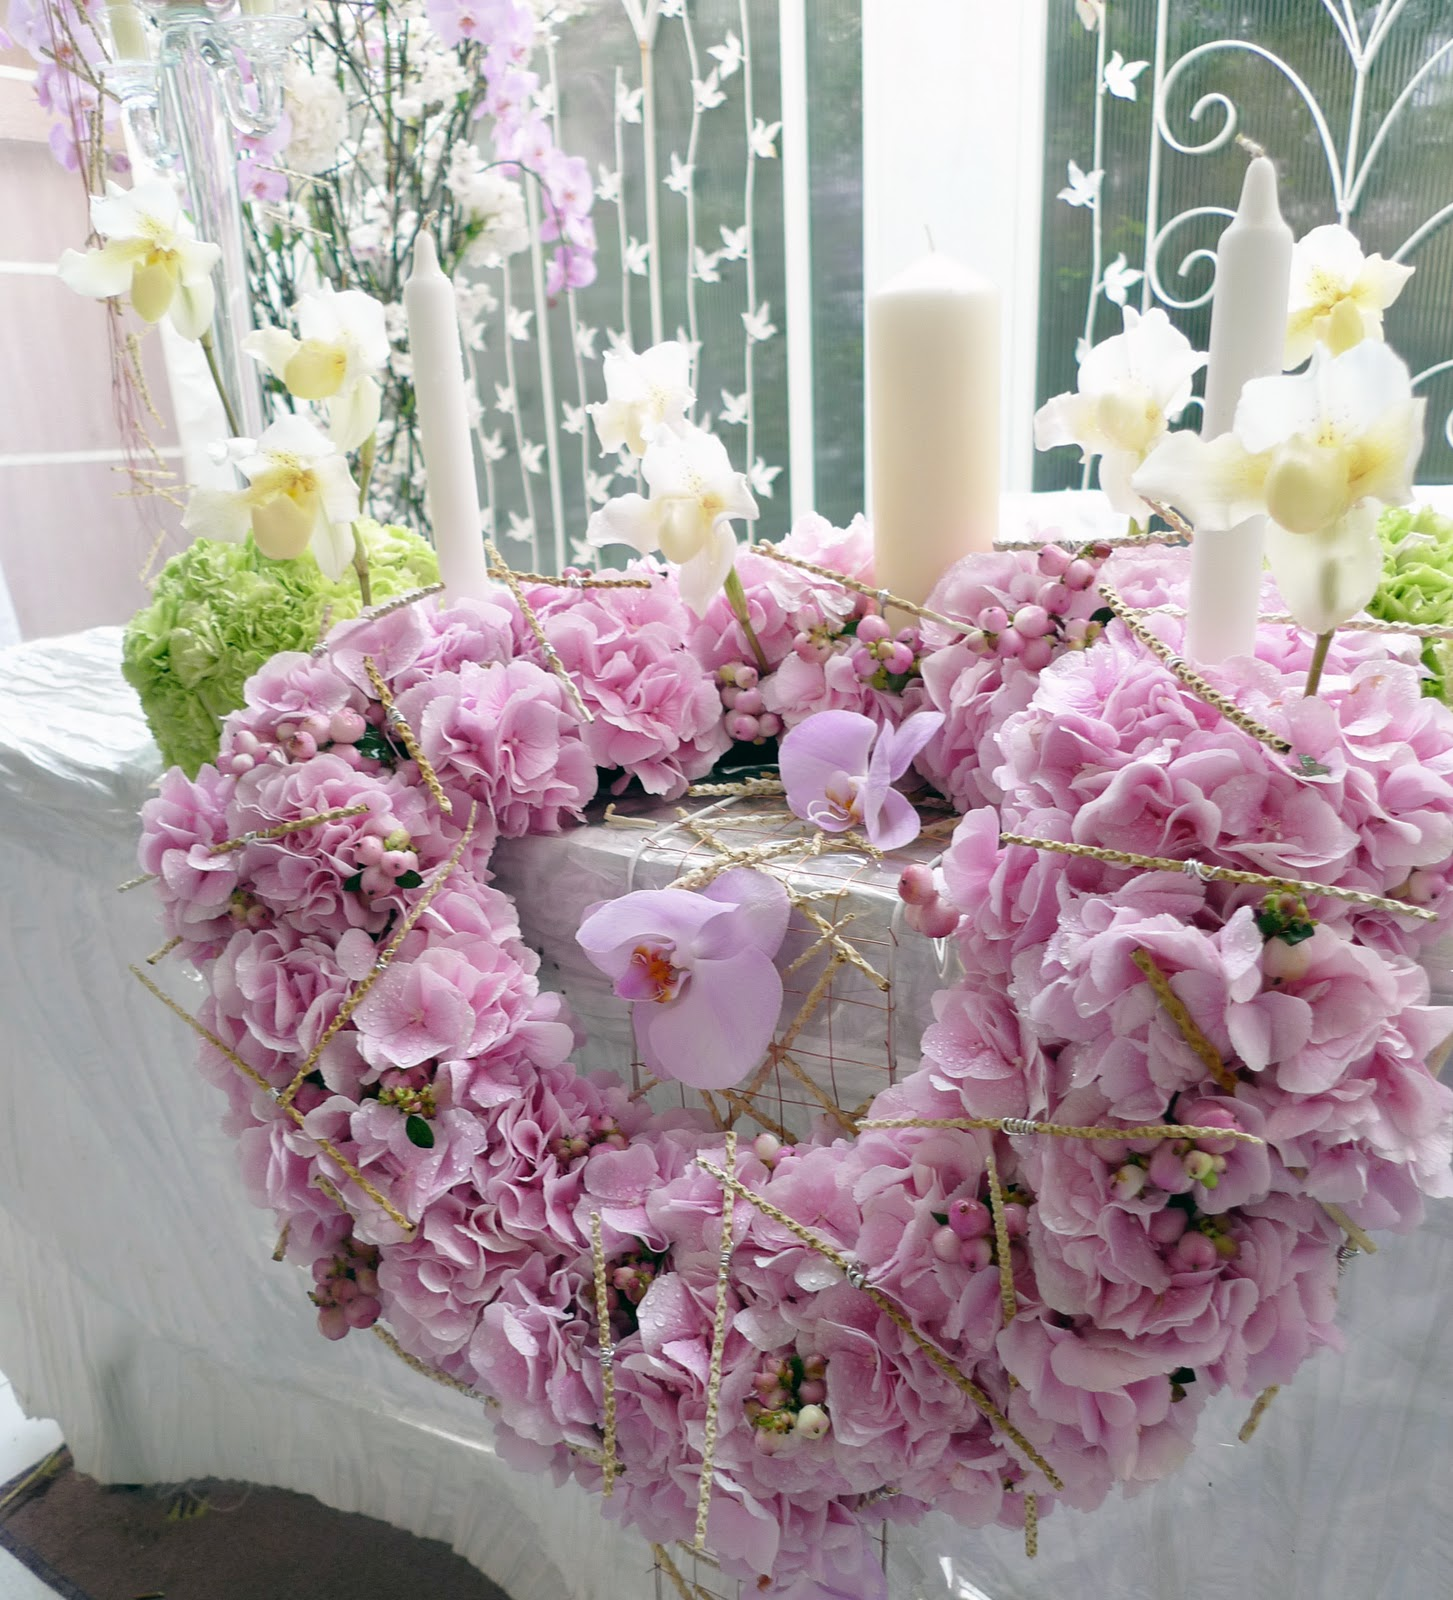 Wedding flowers decorations romantic decoration for Decoration flowers